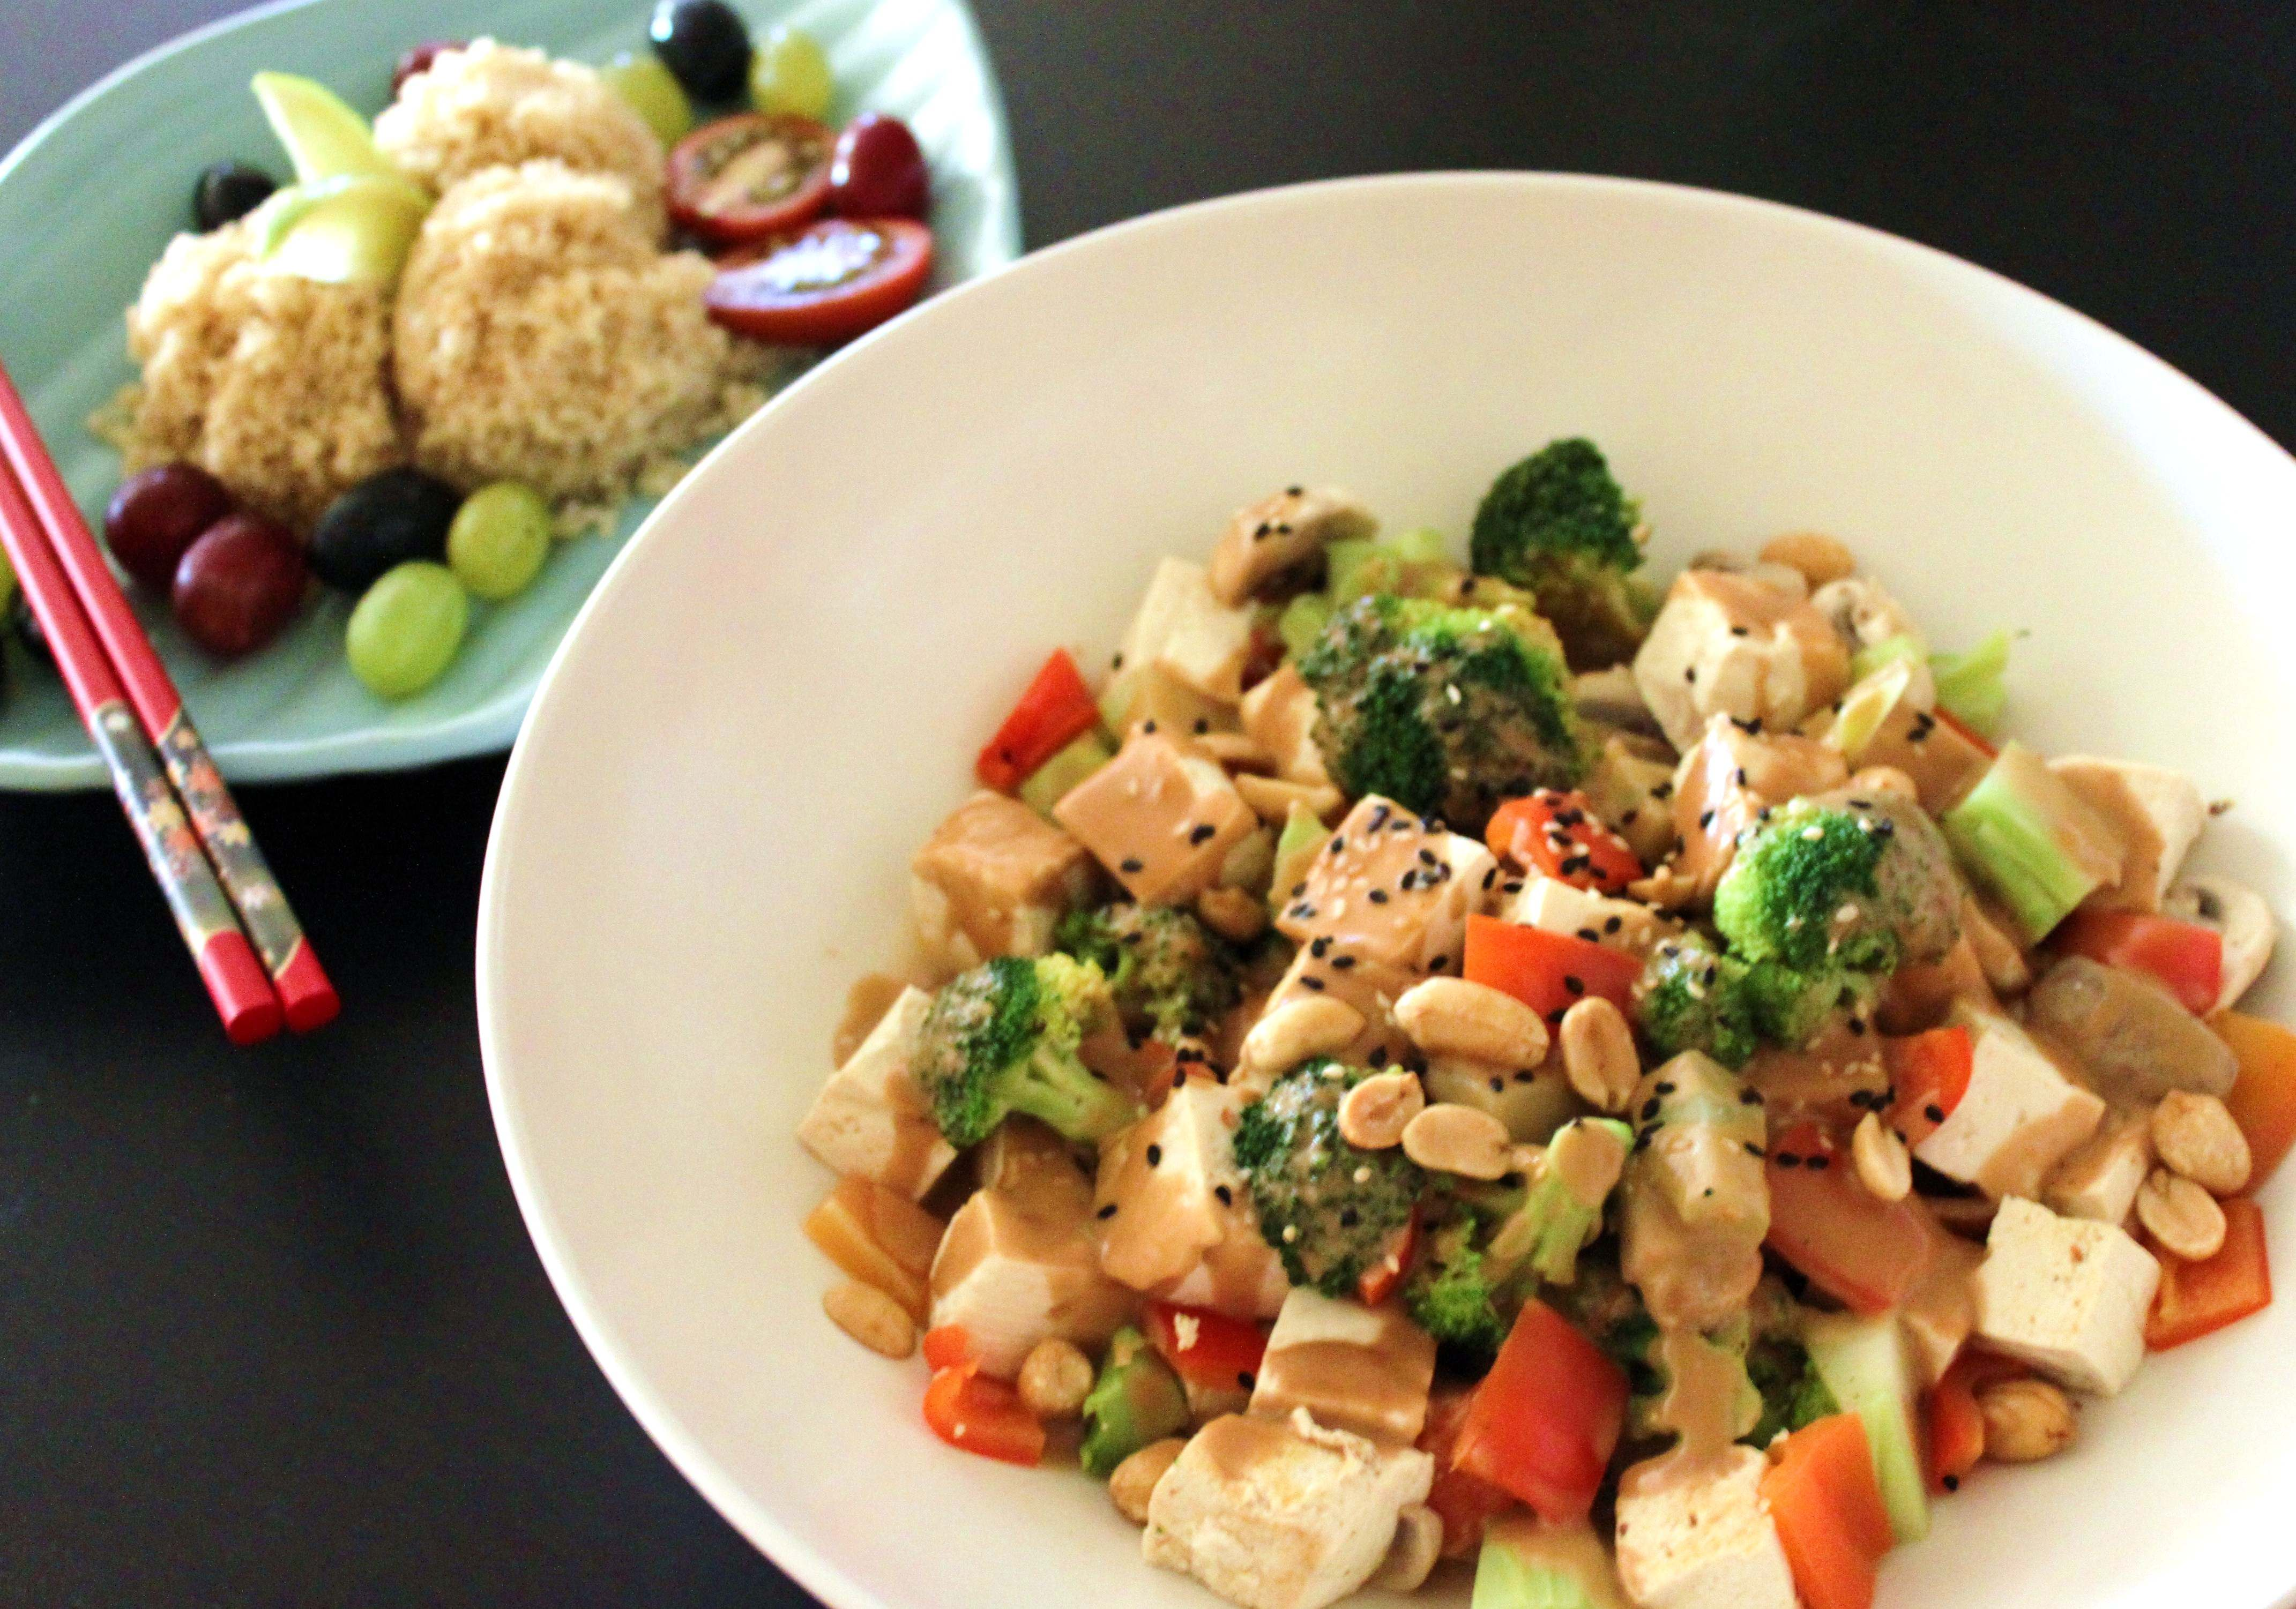 Quinoa makes a wonderful base for this Peanut Sauce Stir Fry with Tofu (recipe above)